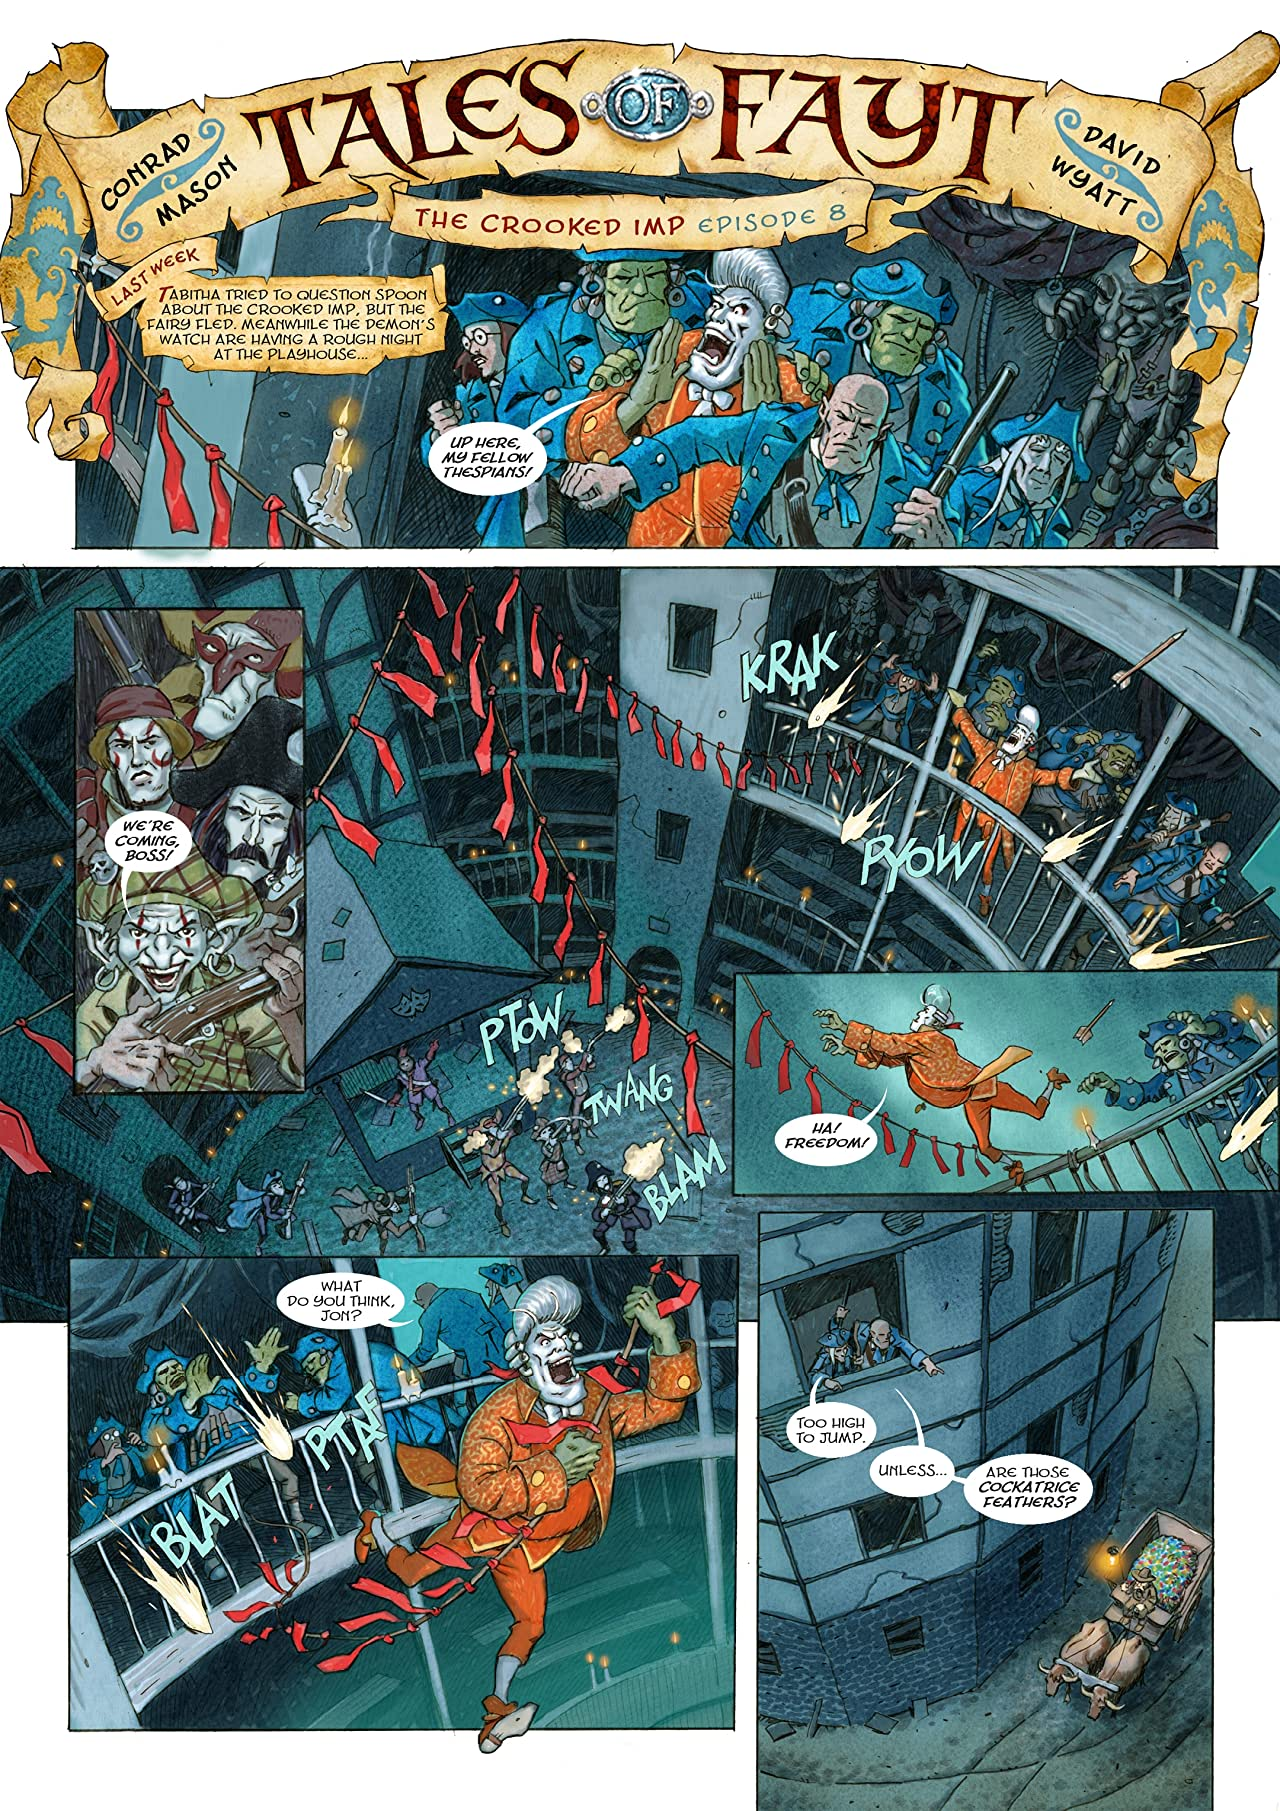 The Phoenix #132: The Weekly Story Comic